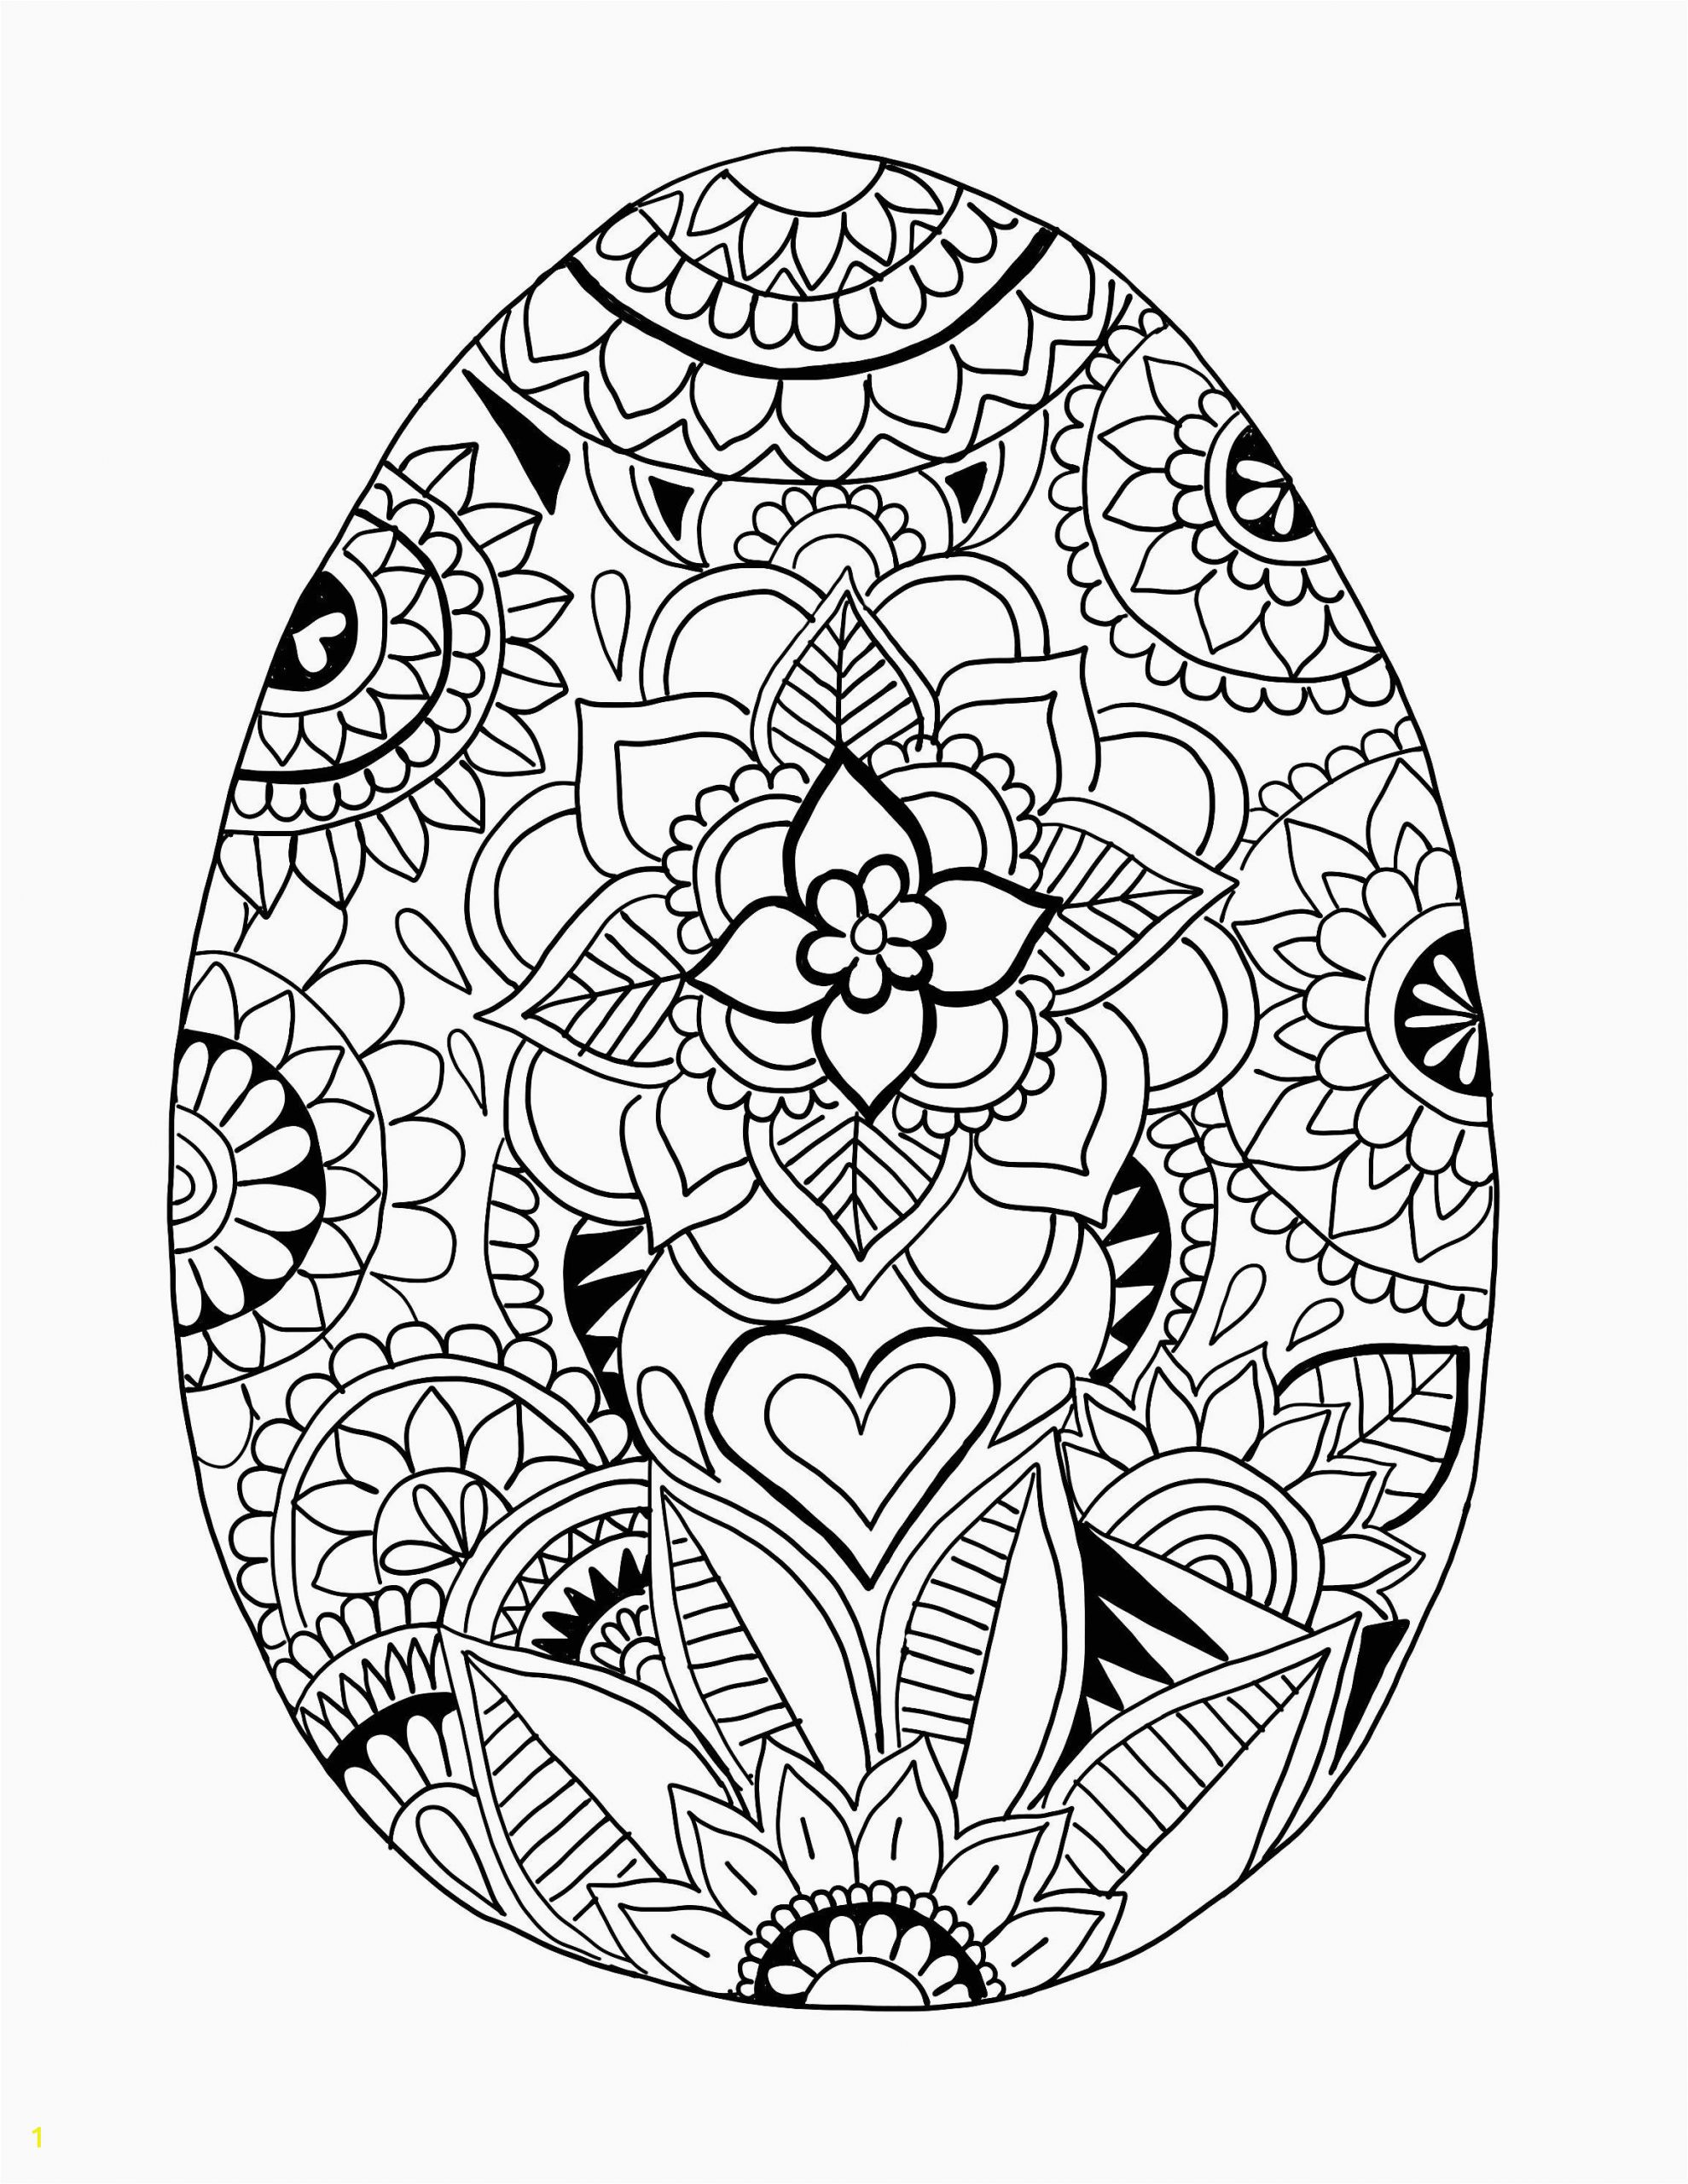 Easter Egg Coloring Pages Printable Pin On Adult and Kids Coloring Pages